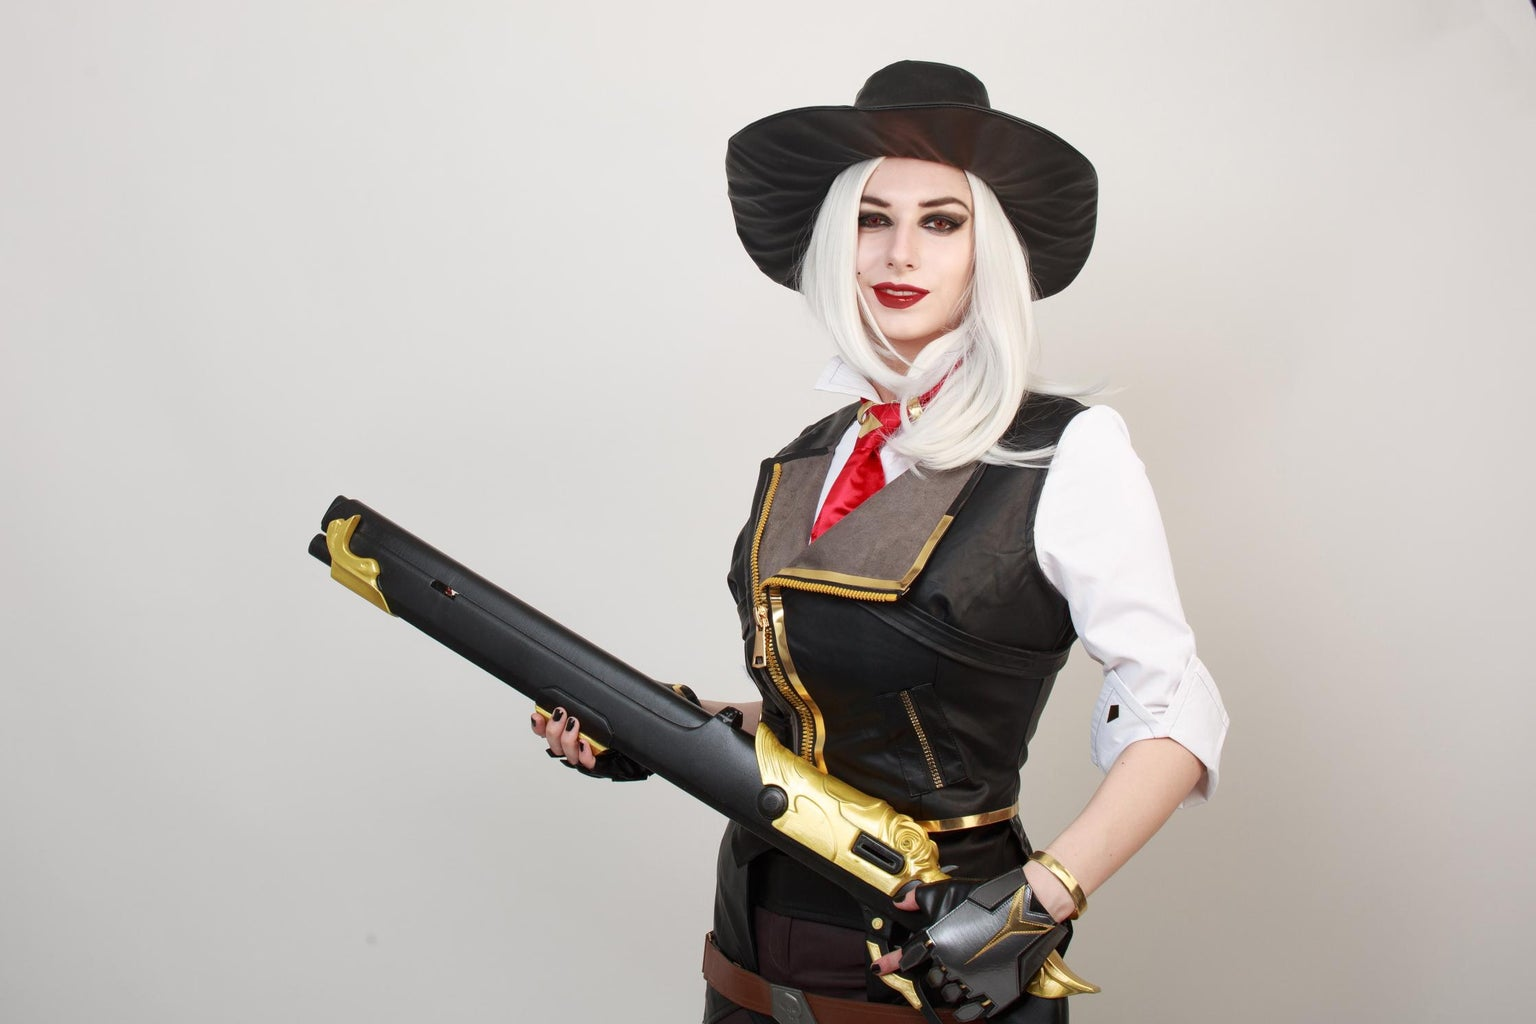 3D Printed Ashe's Rifle (Overwatch) Cosplay Tutorial